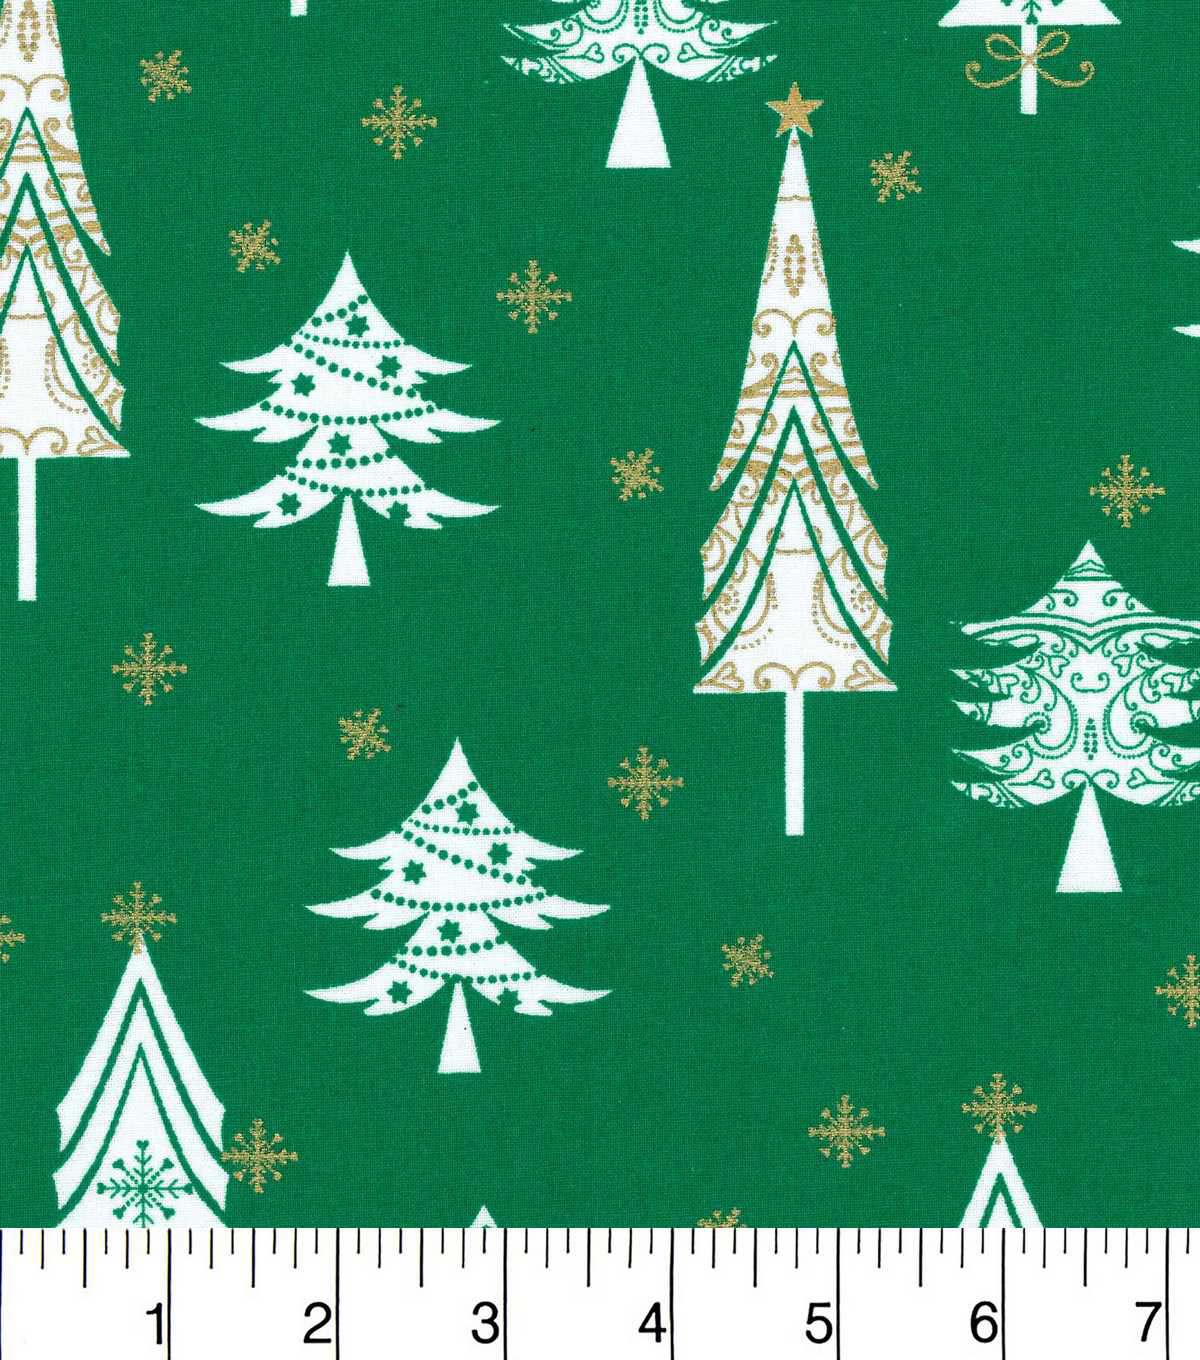 Keepsake Calico Christmas Cotton Fabric-Whimsical Trees On Green